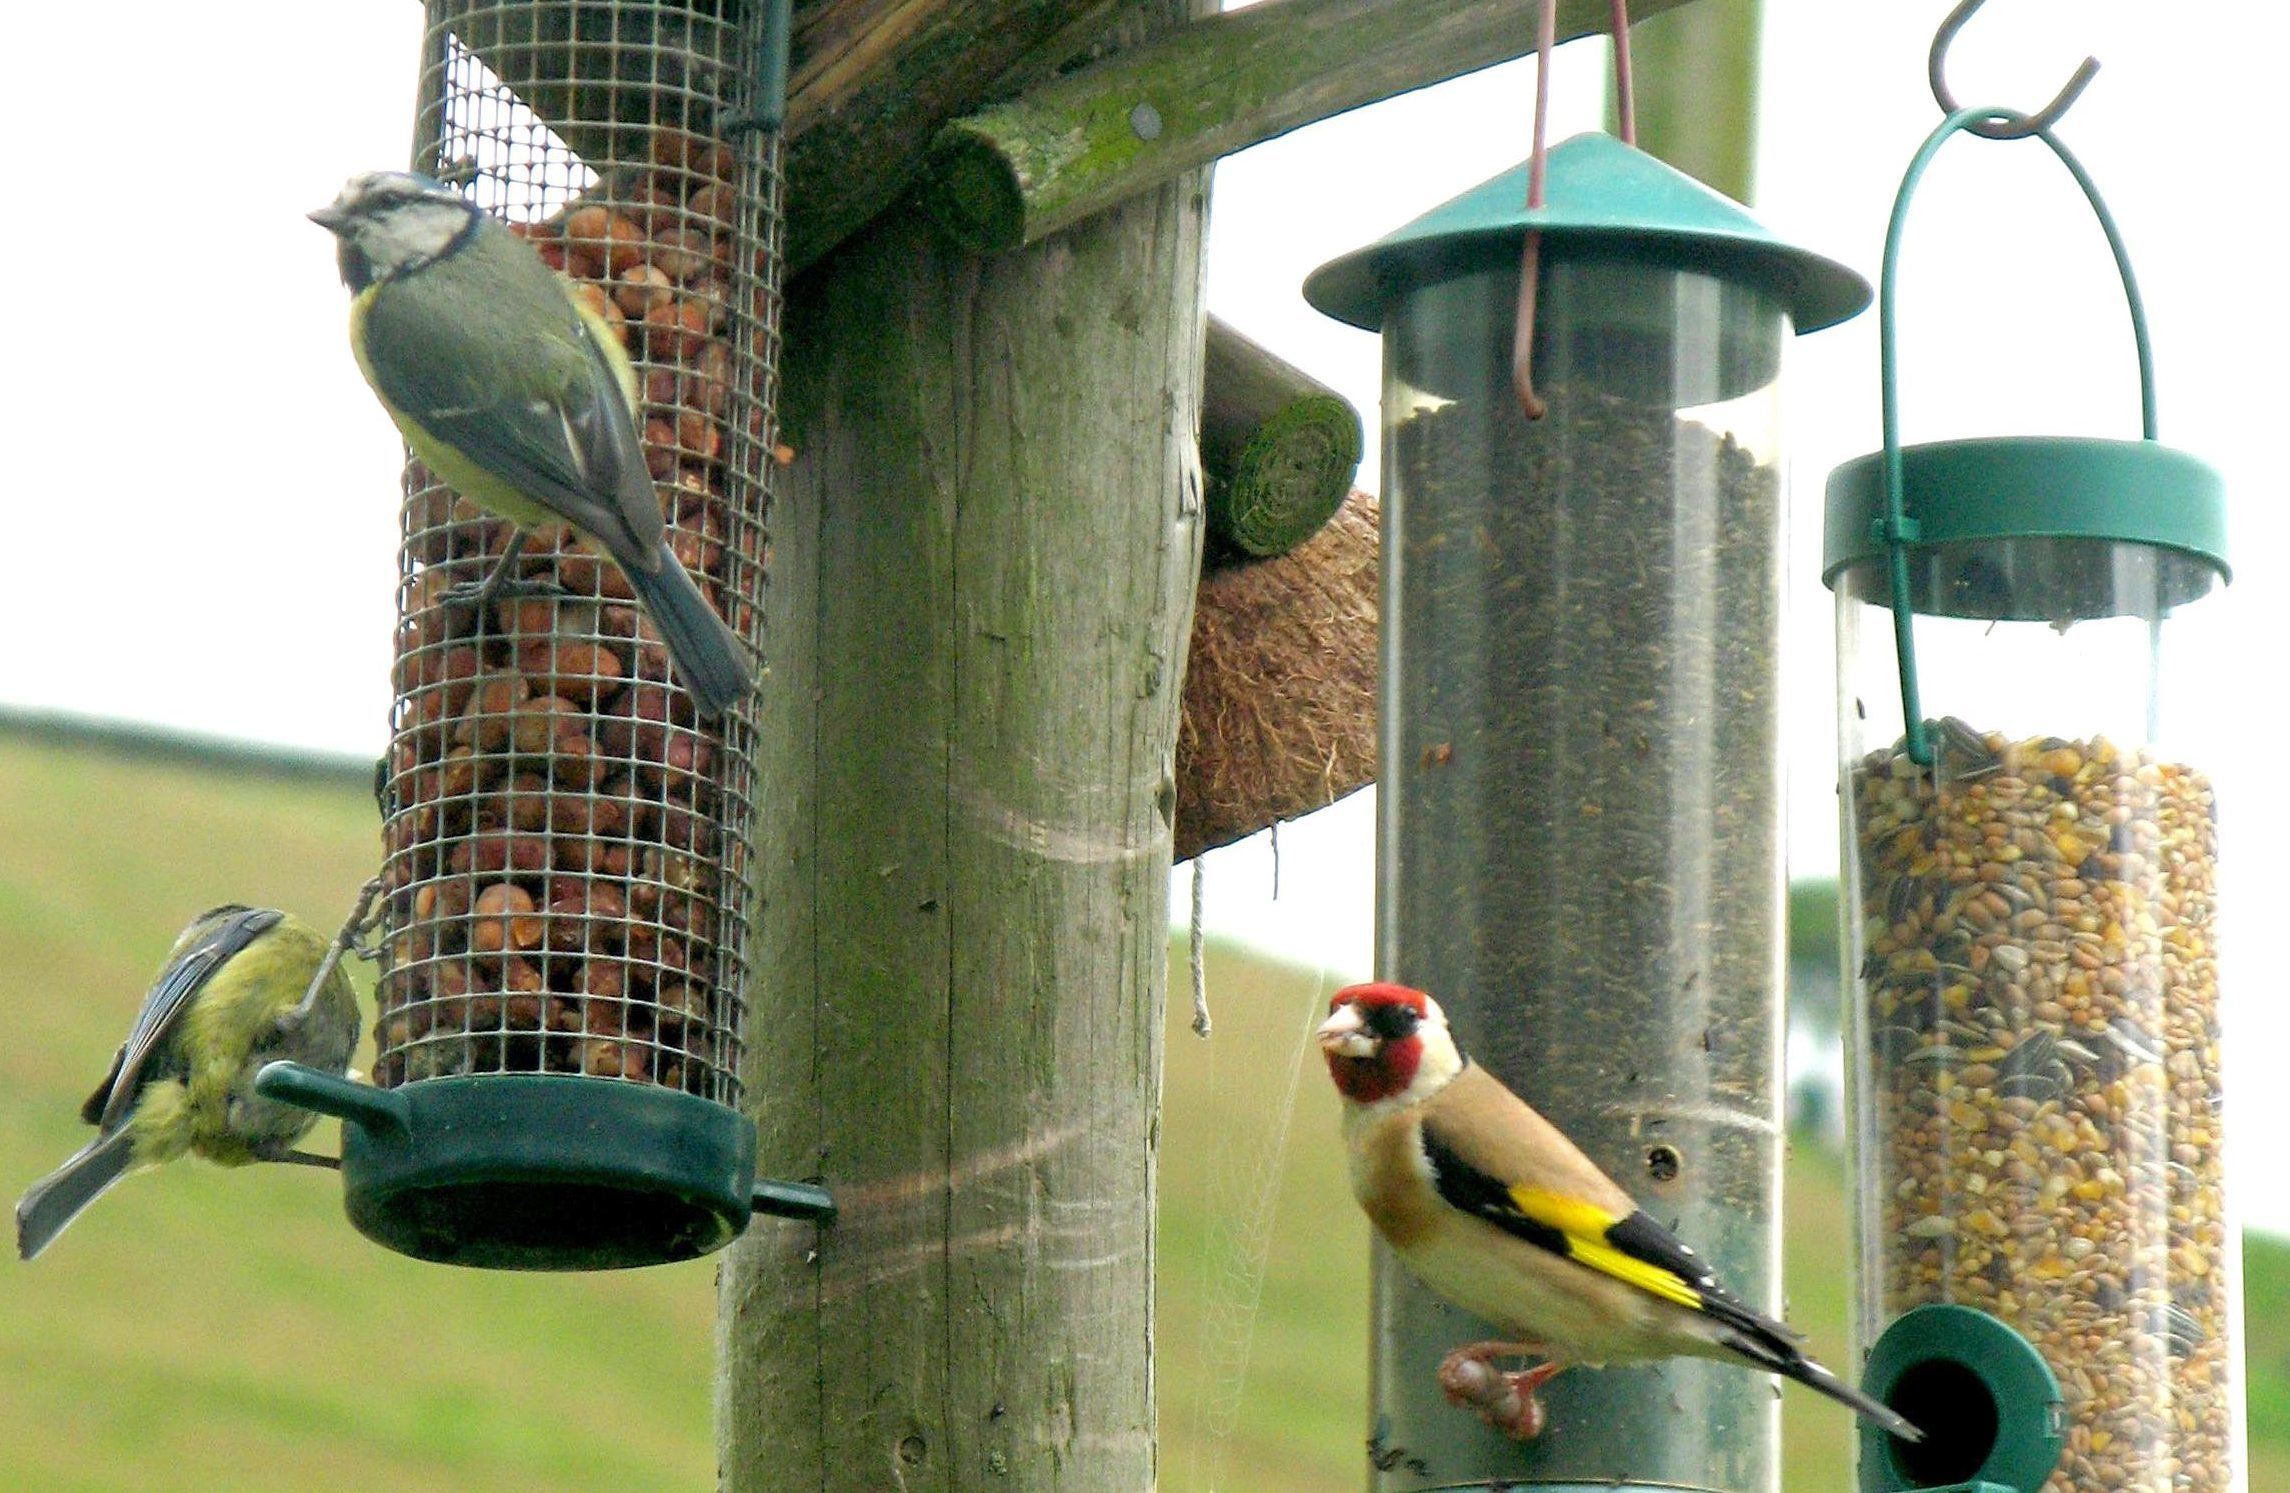 A Goldfinch and a pair of Blue Tits feeding from bird tables (Stephen Kelly/PA Wire)